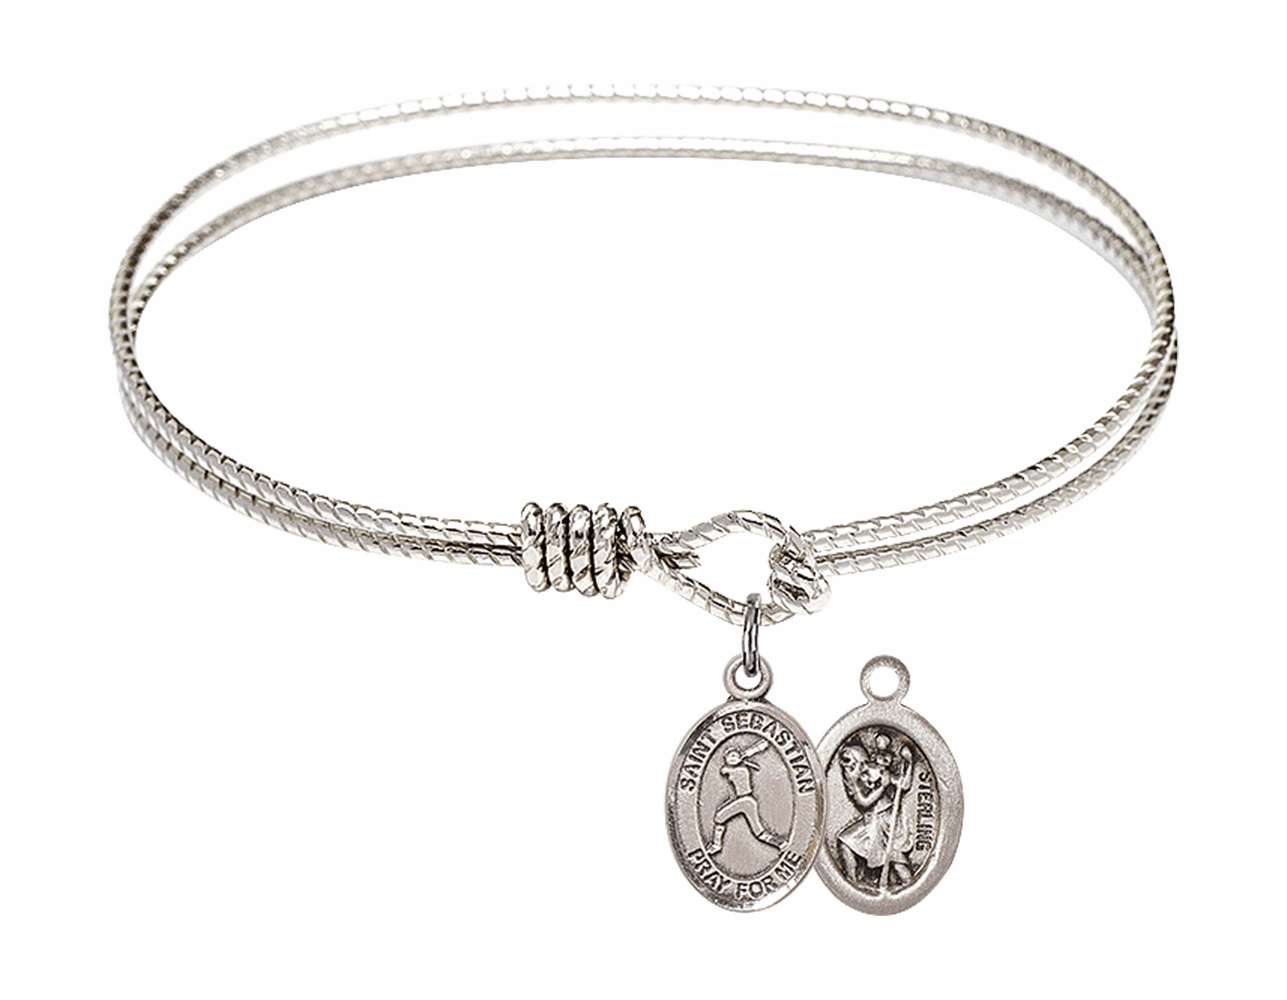 Twist Round Eye Hook St Sebastian Softball Bangle Charm Bracelet by Bliss